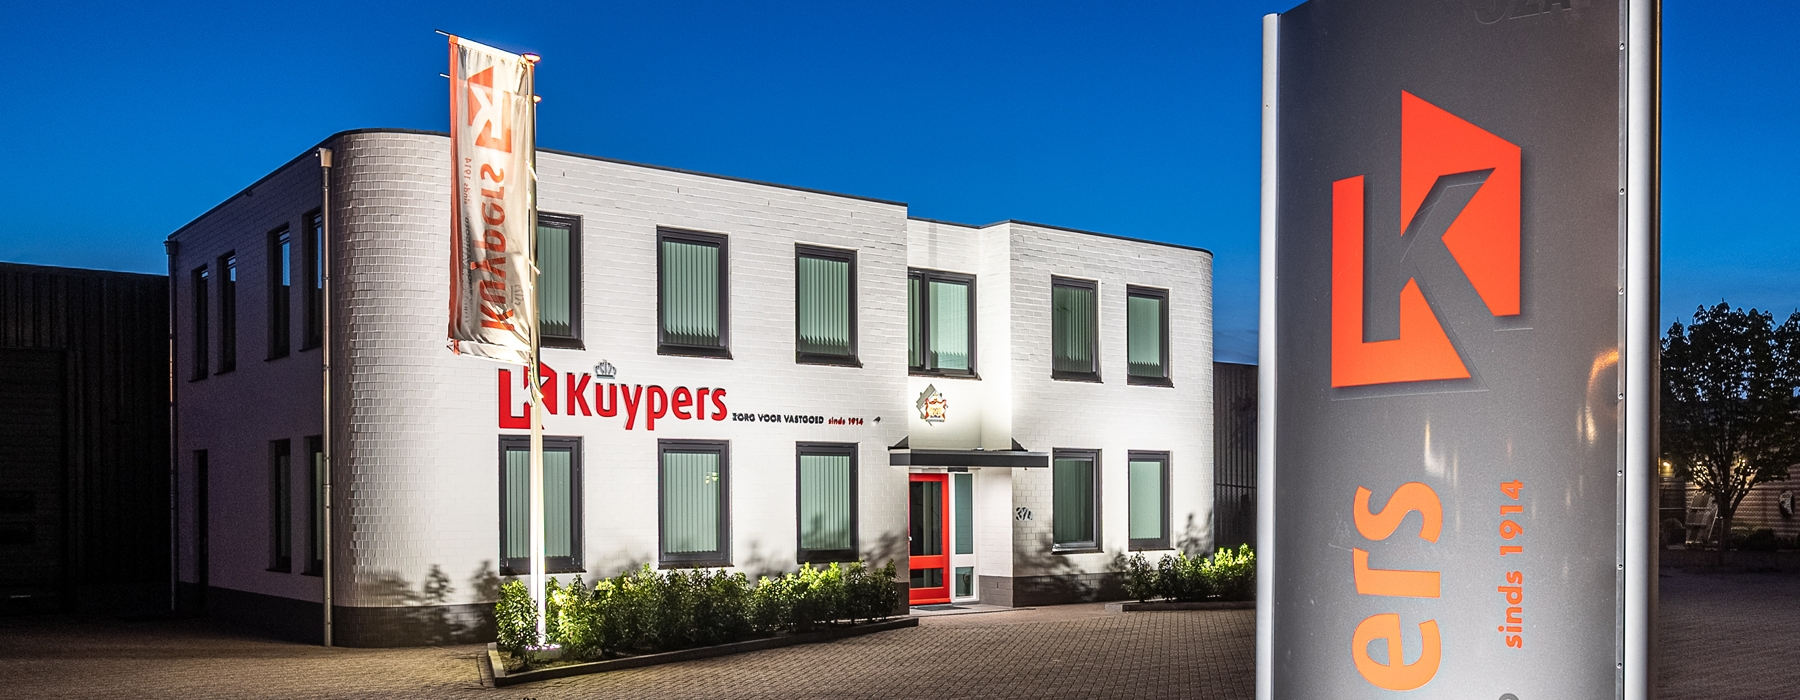 Pand_Kuypers